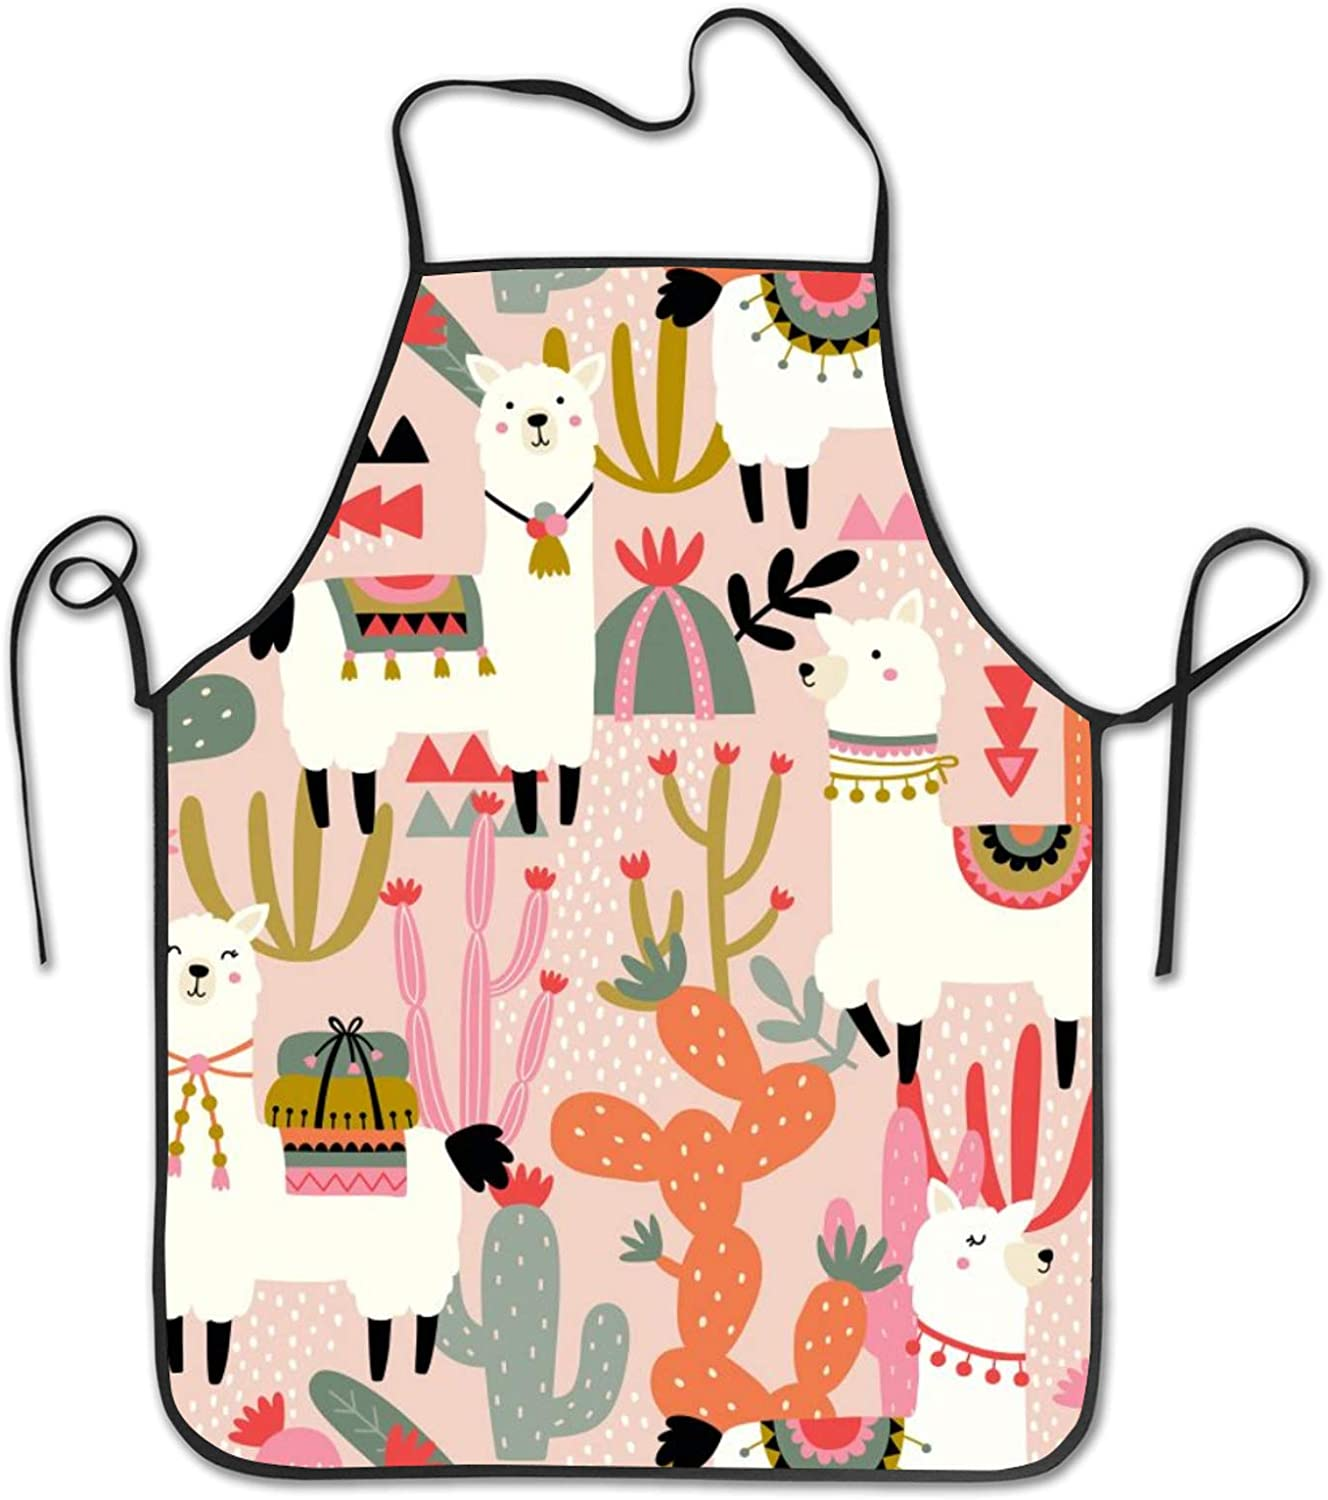 JANBOR Cute Llama & Cactus Funny Aprons, Washable Cooking Kitchen Chef Apron for Women Men, 28 x 21 Inch